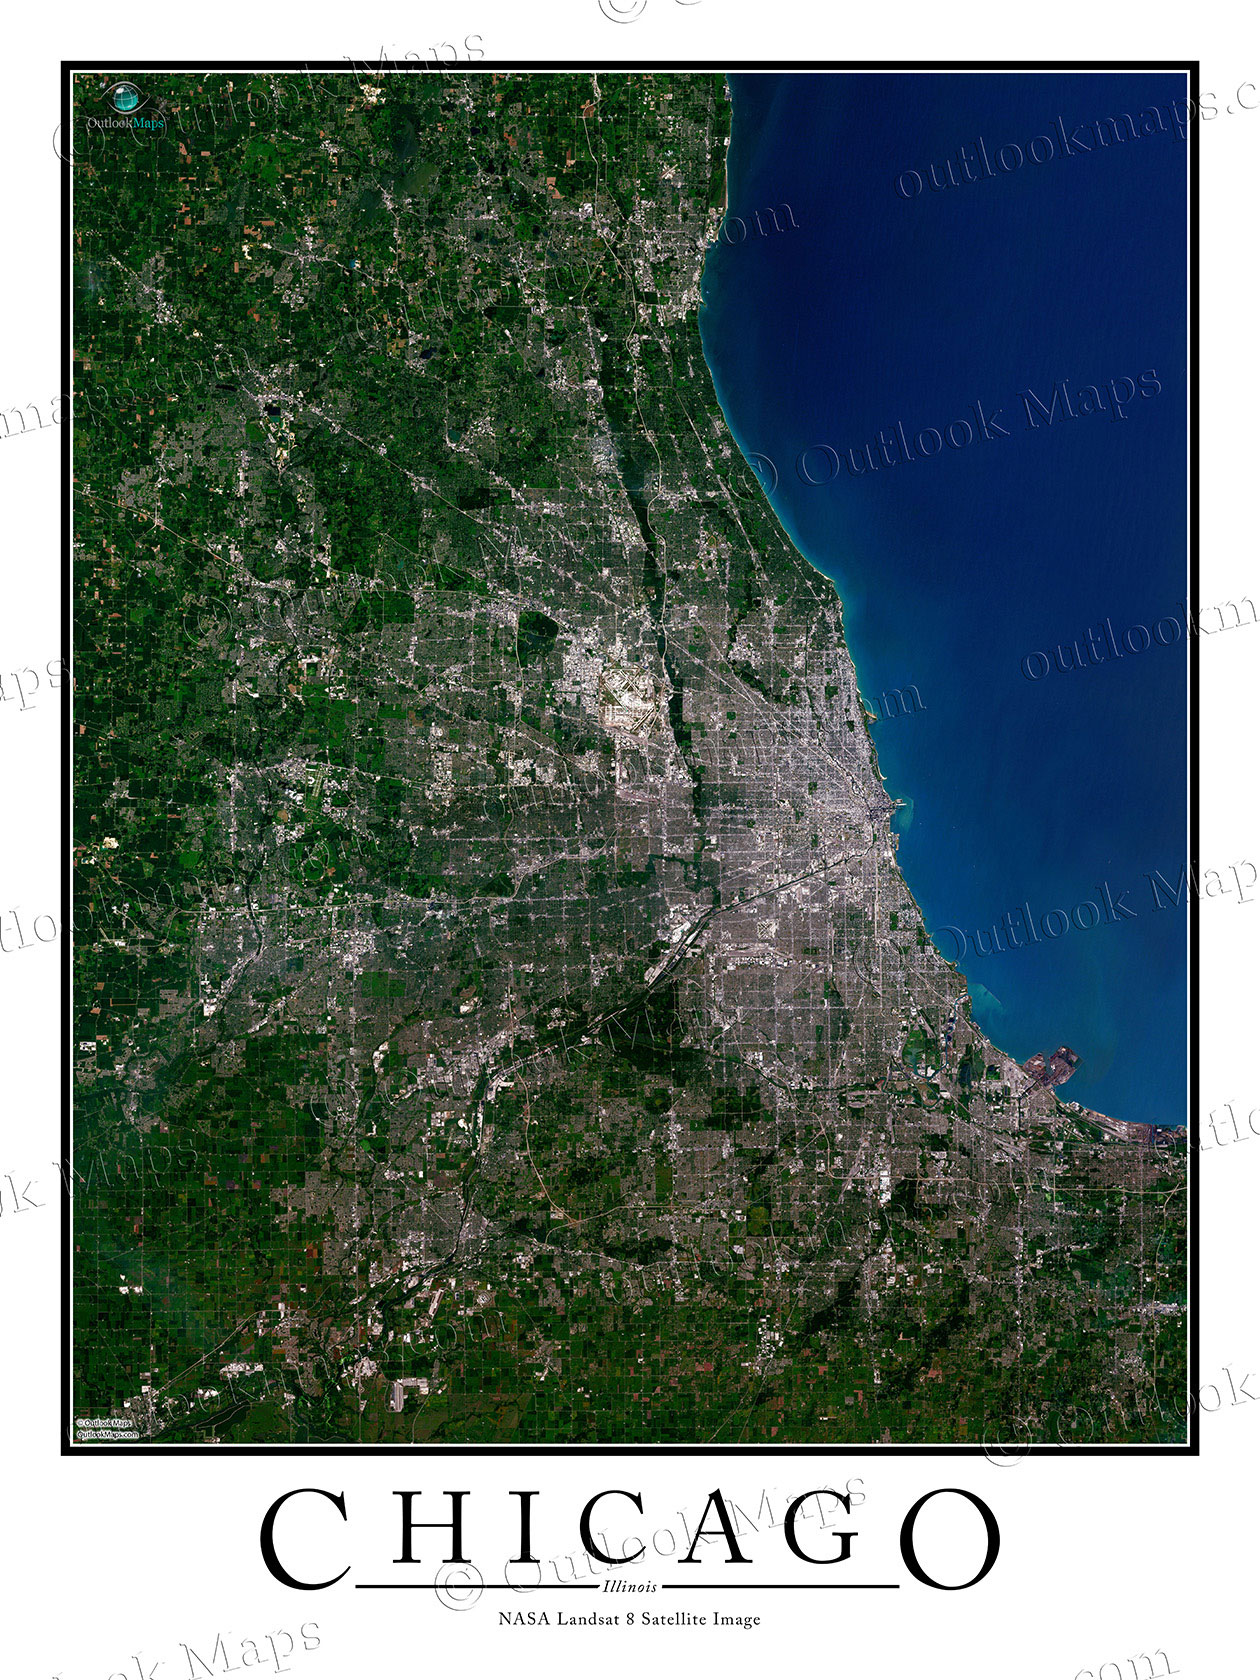 Chicago, IL Satellite Map Print | Aerial Image Poster on metro detroit, cook county, map of st peters mo, map of new orleans la, map of durham nc, lake county, map of alexandria va, map of bountiful ut, oak park, map of indiana in, map of phoenix az, phoenix metropolitan area, chicago loop, map of long island city ny, map of white bear lake mn, map of ithaca ny, map of new york city ny, new york metropolitan area, map of chicagoland area and suburbs, greater los angeles area, map of montreal canada, delaware valley, map of carolina pr, will county, map of illinois, map of memphis tn, kane county, map of salt lake city ut, map of pocatello id, dekalb county, dupage county, map of honolulu hi, map of nashville tn,